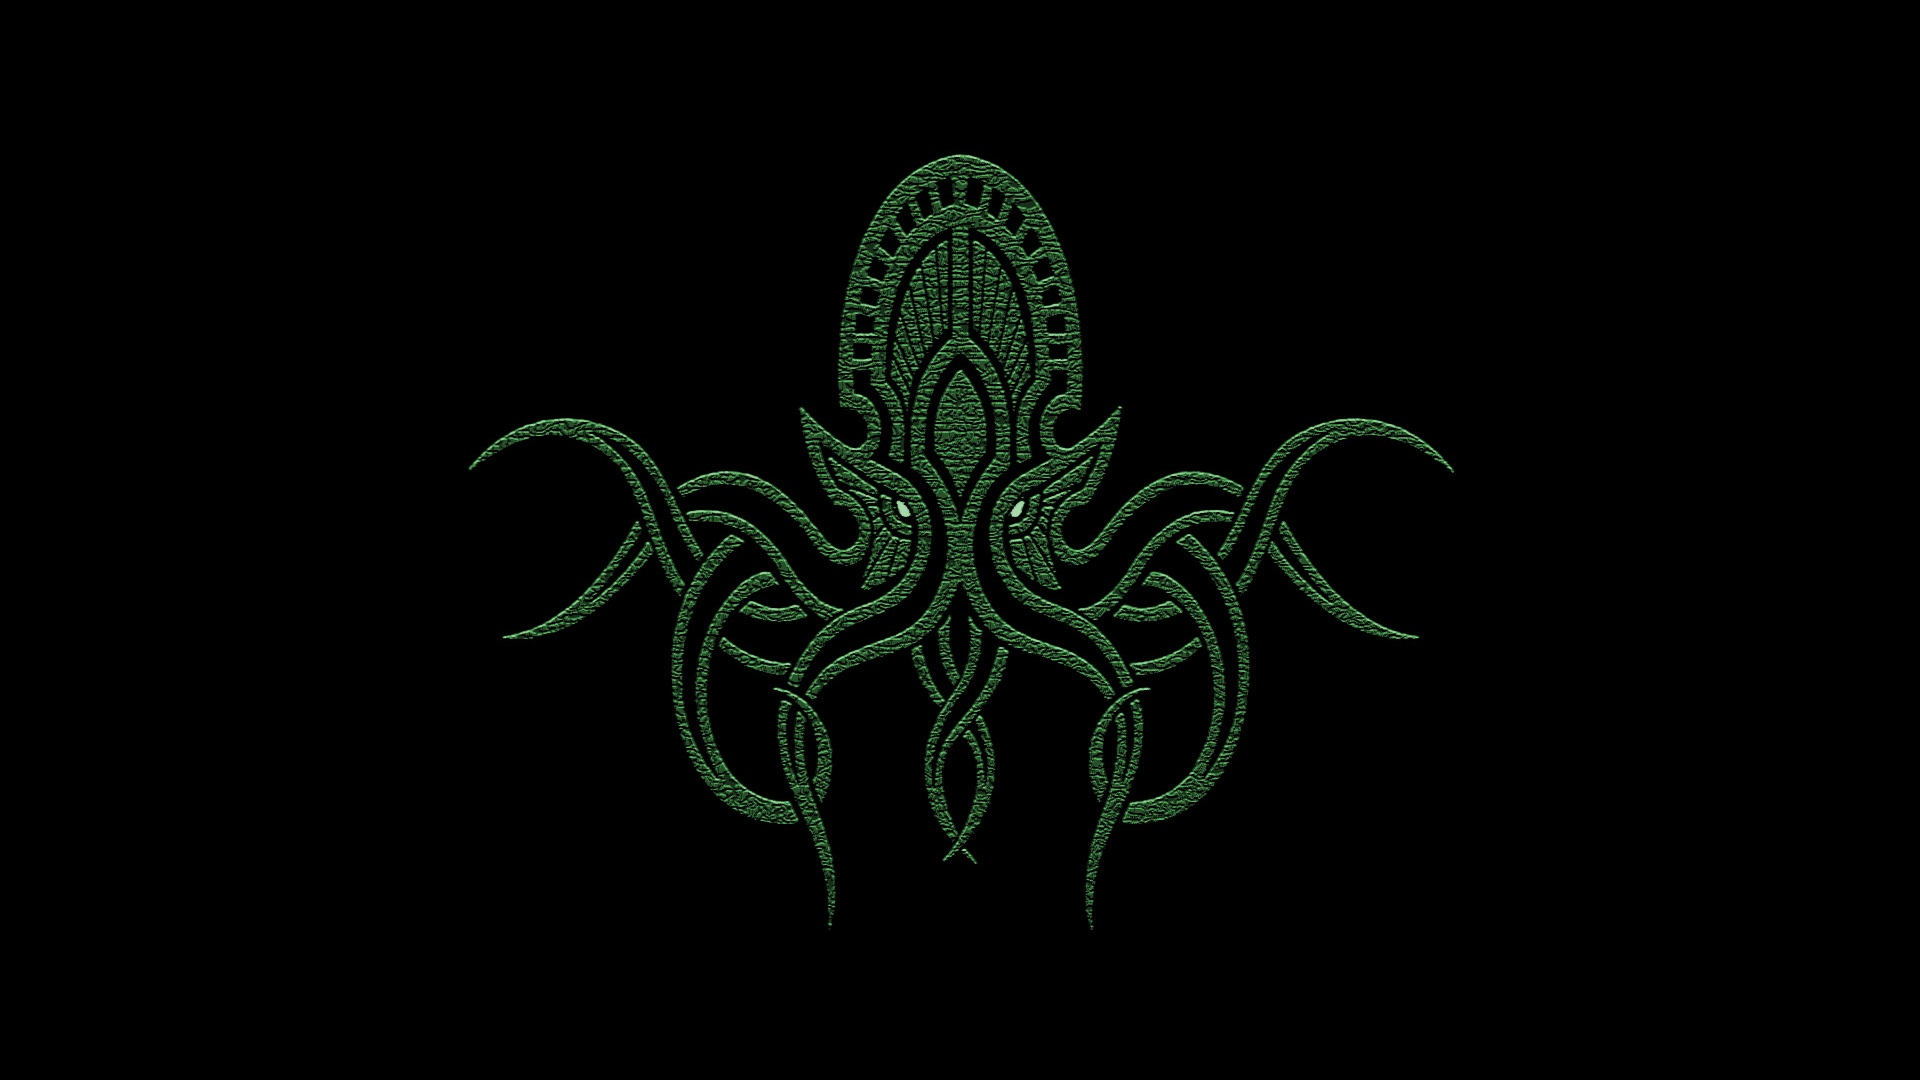 49 Cthulhu Phone Wallpaper On Wallpapersafari